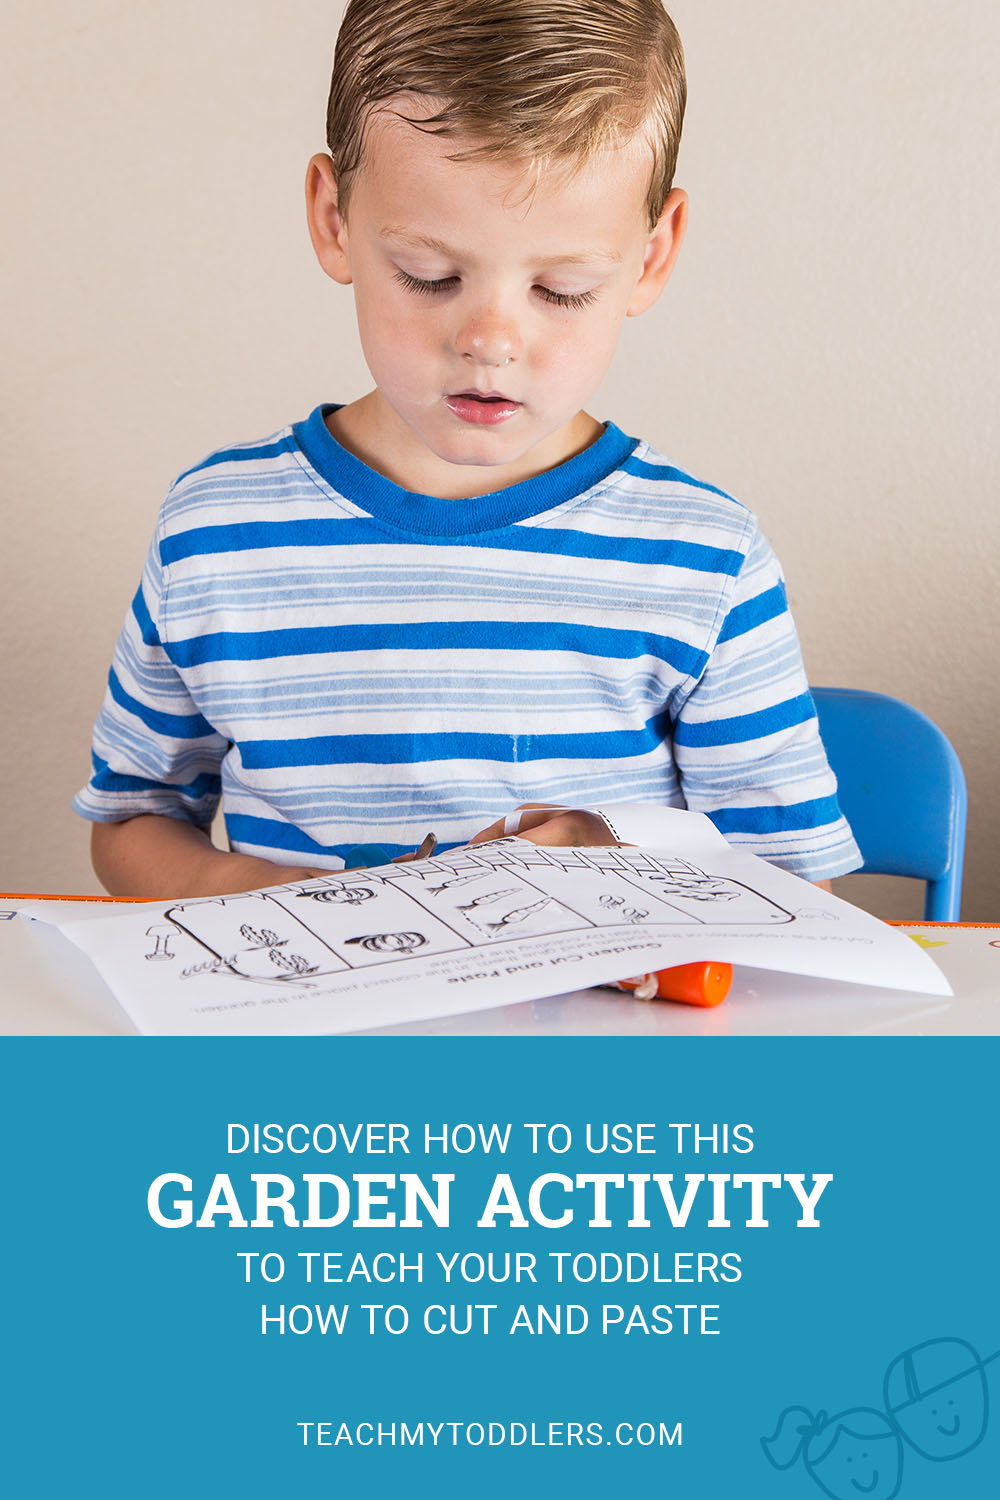 Discover how to use this garden activity to teach toddlers how to cut and paste